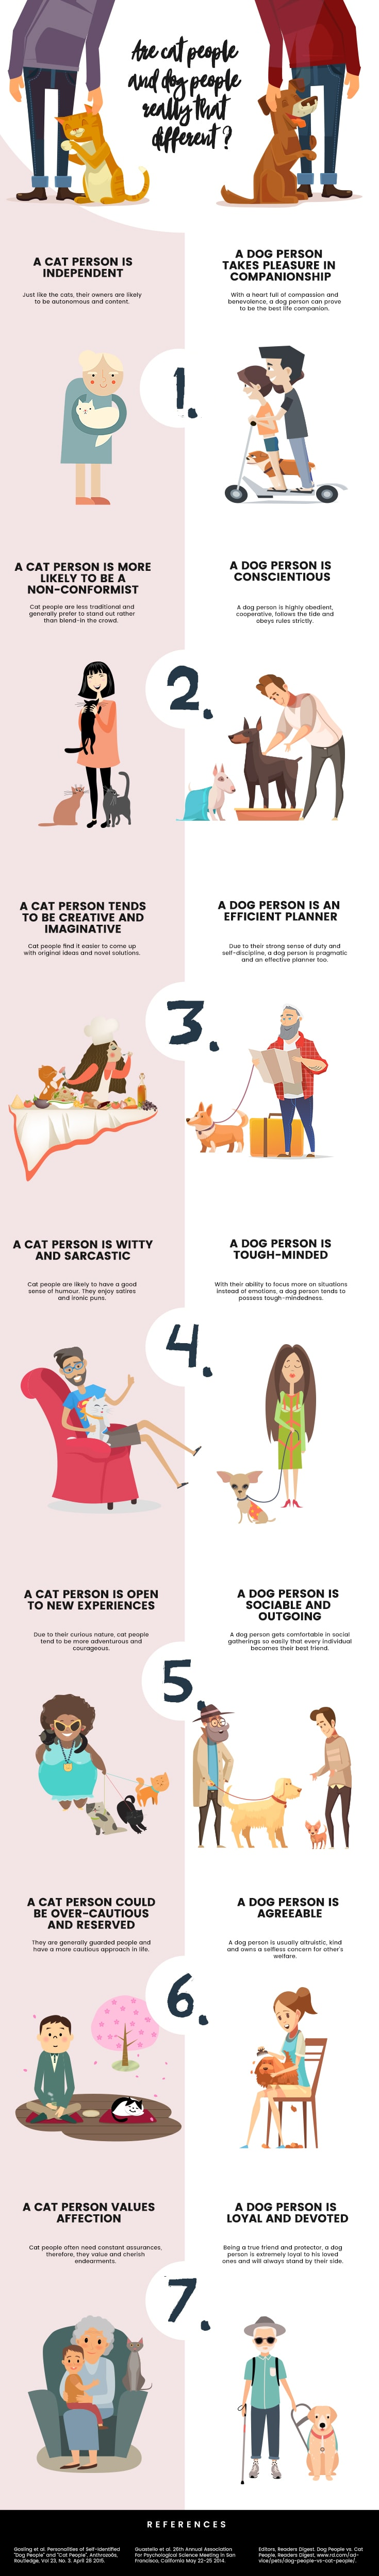 Are-you-Cat-person-or-Dog-Person-infographic-plaza